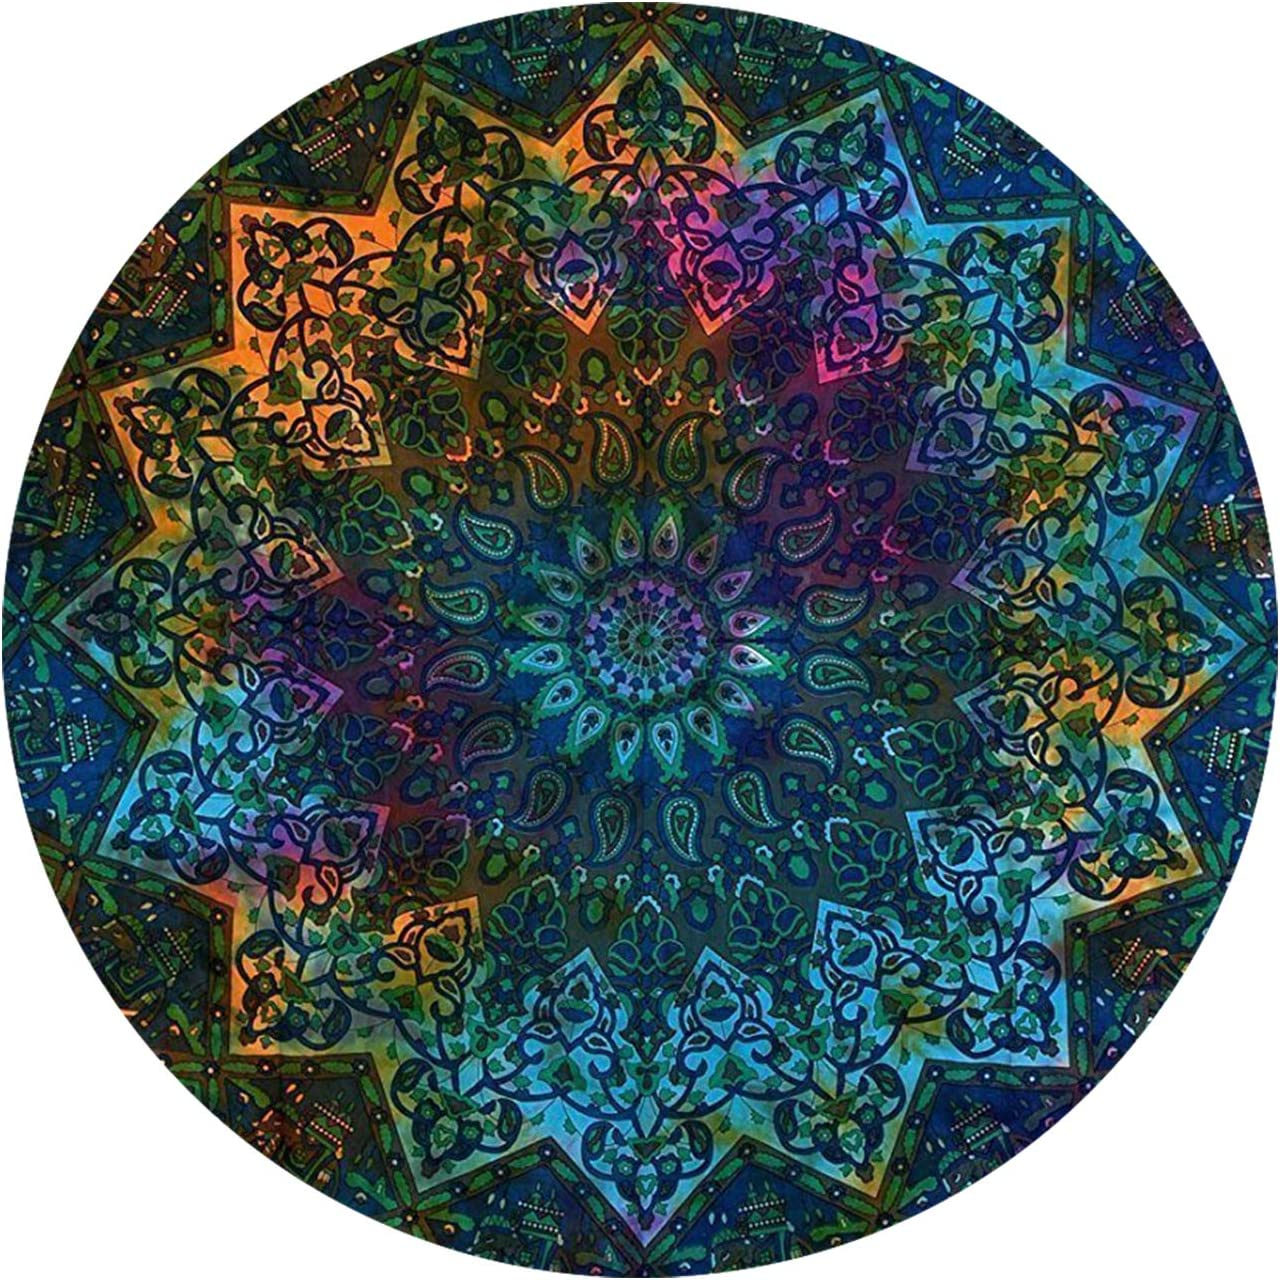 GLOBUS CHOICE INC. Blue Tie Dye Star Round Beach Tapestry Hippie Boho Mandala Blanket Indian Cotton Throw Bohemian Table Decor Cloth Yoga Mat Meditation Picnic Rugs Multi Color